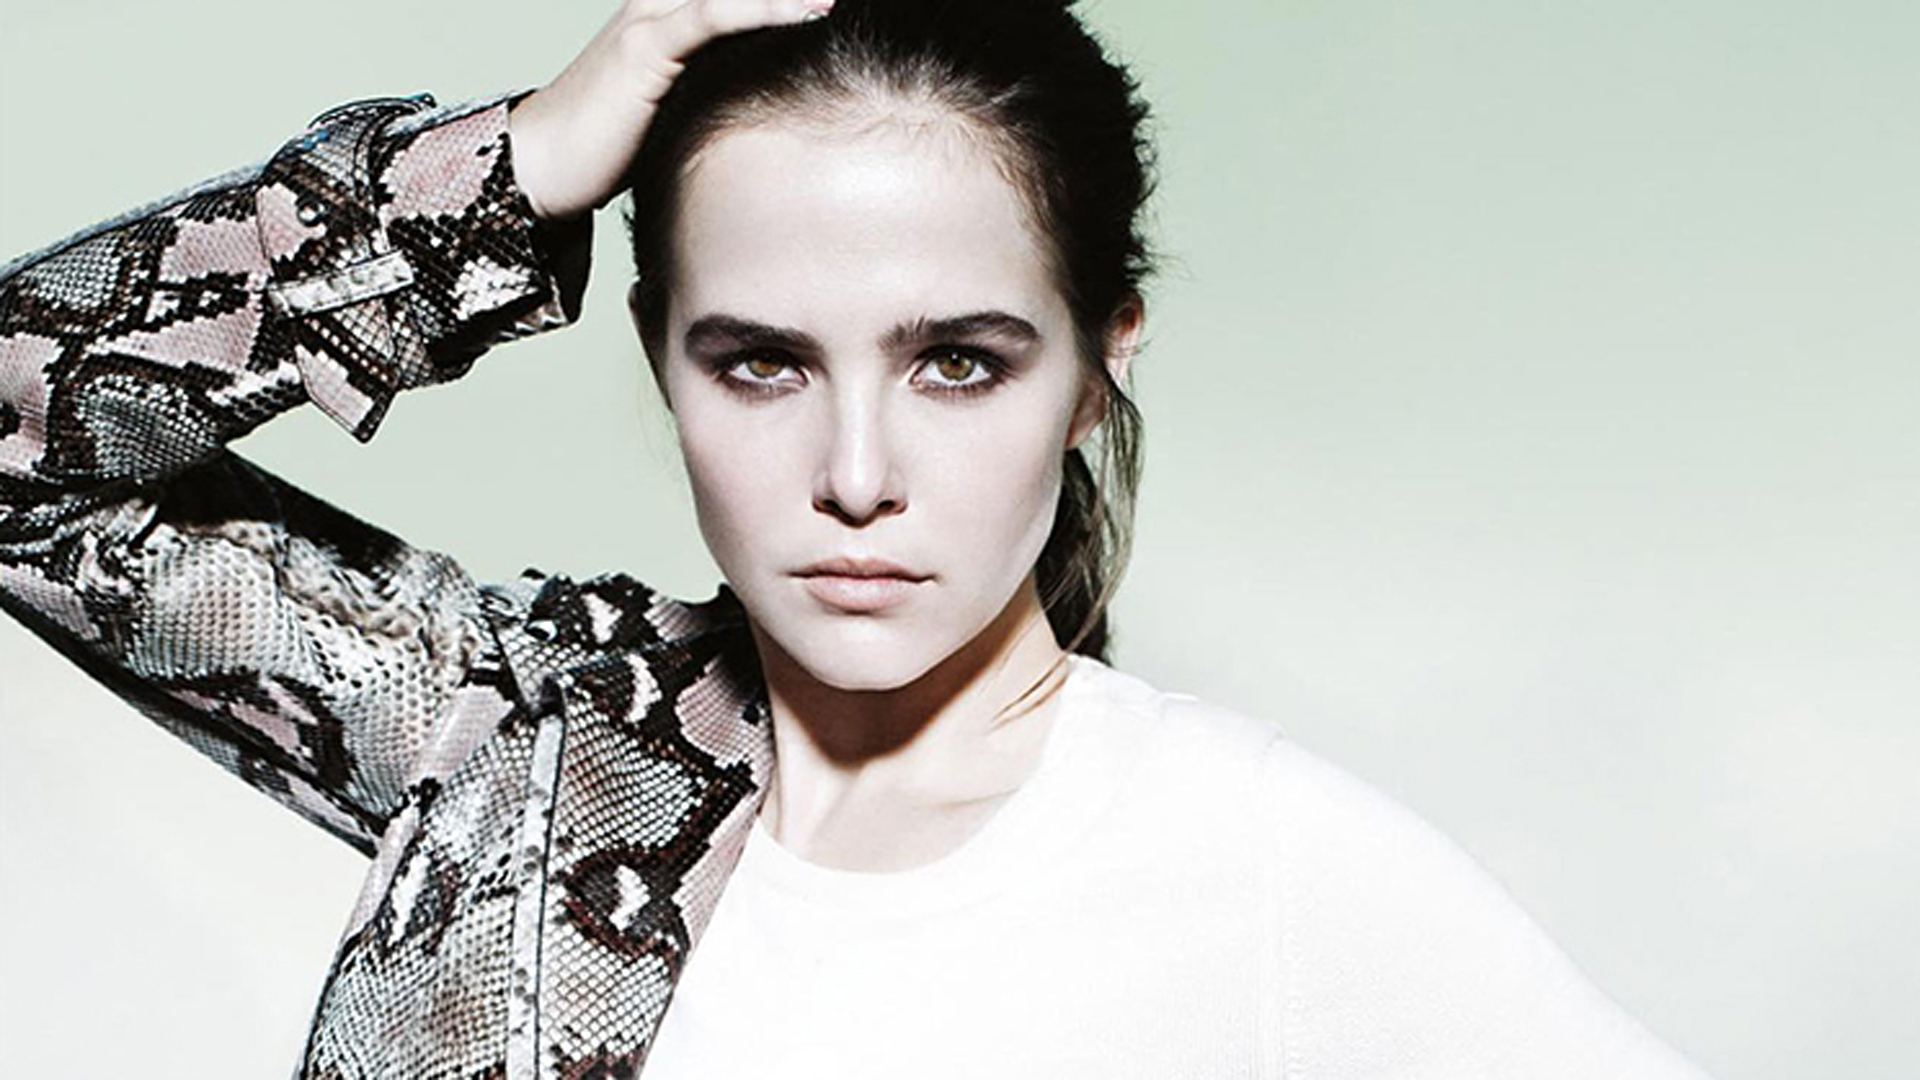 Zoey Deutch Wallpapers HD 14